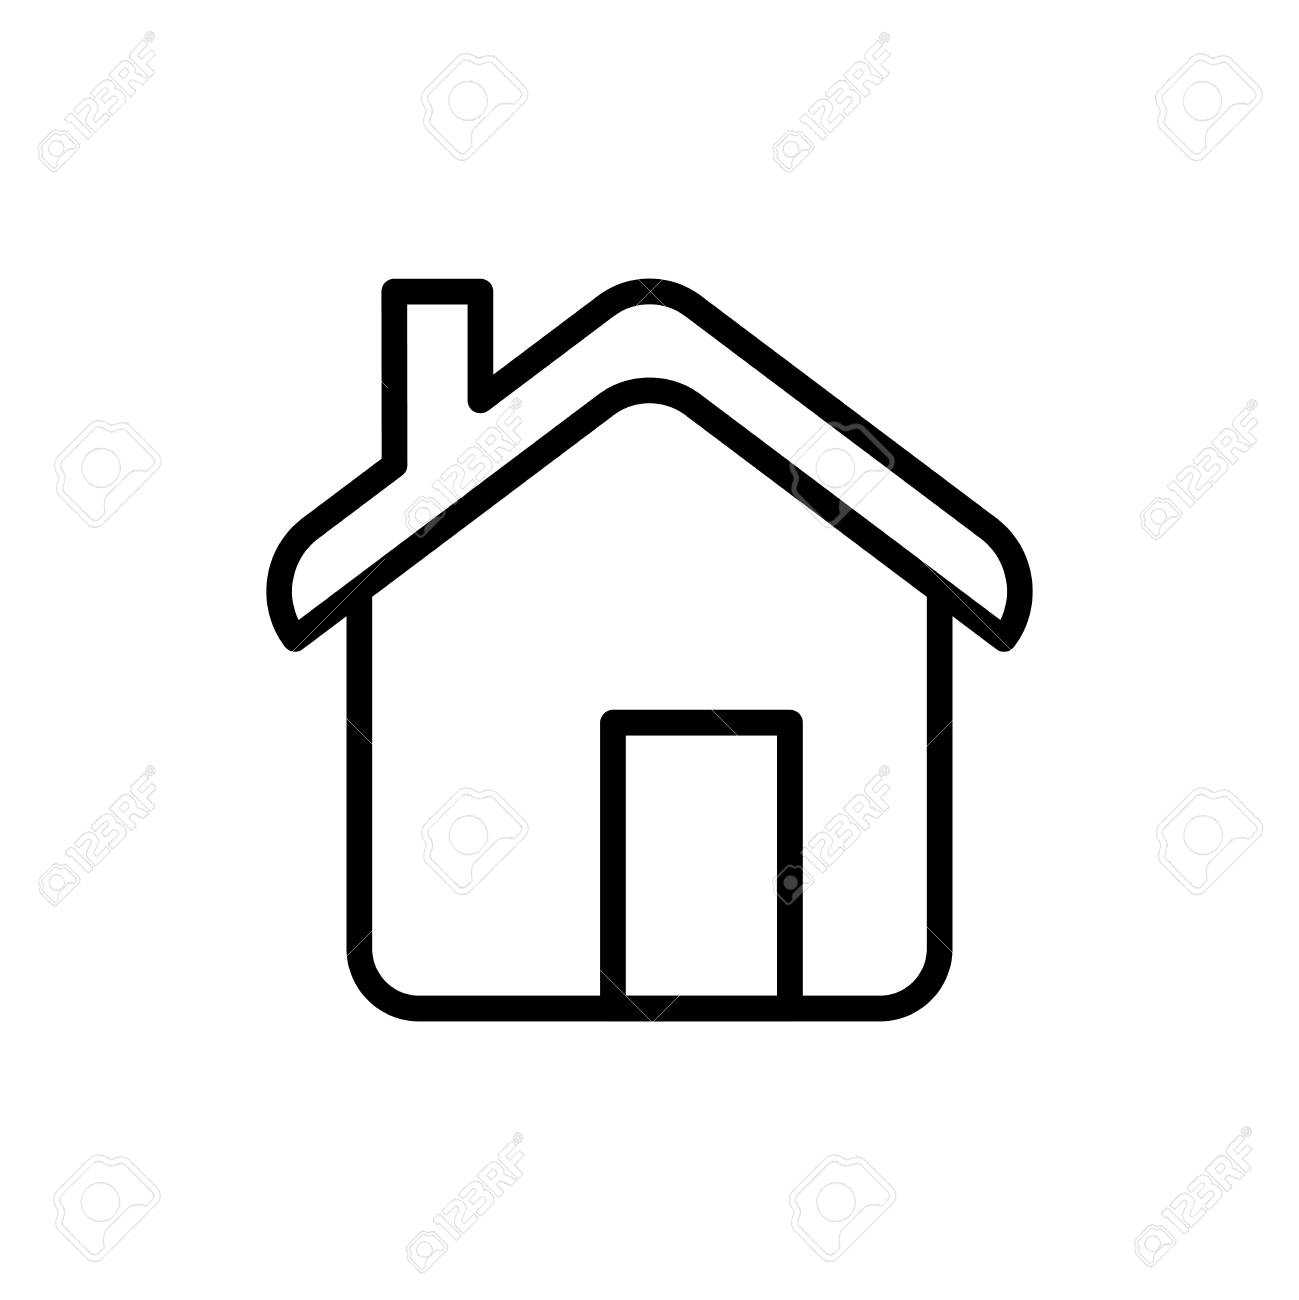 Home Icon On White Background Stock Illustration Download Image Now Istock